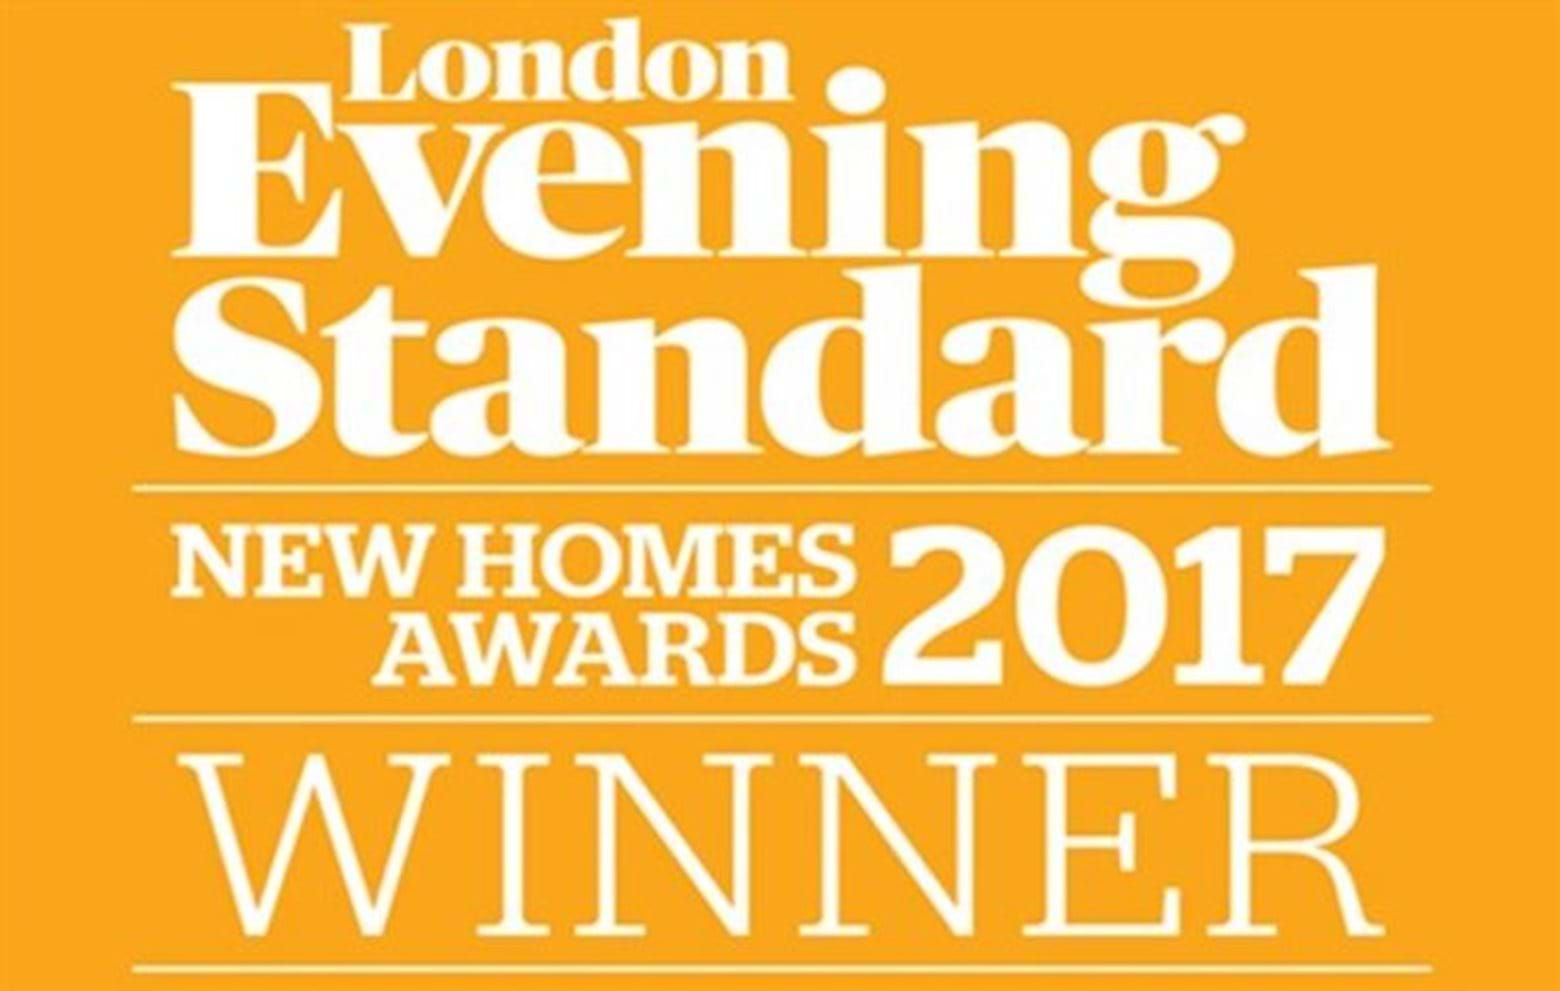 Evening Standared New Homes Awards 2017 Winner